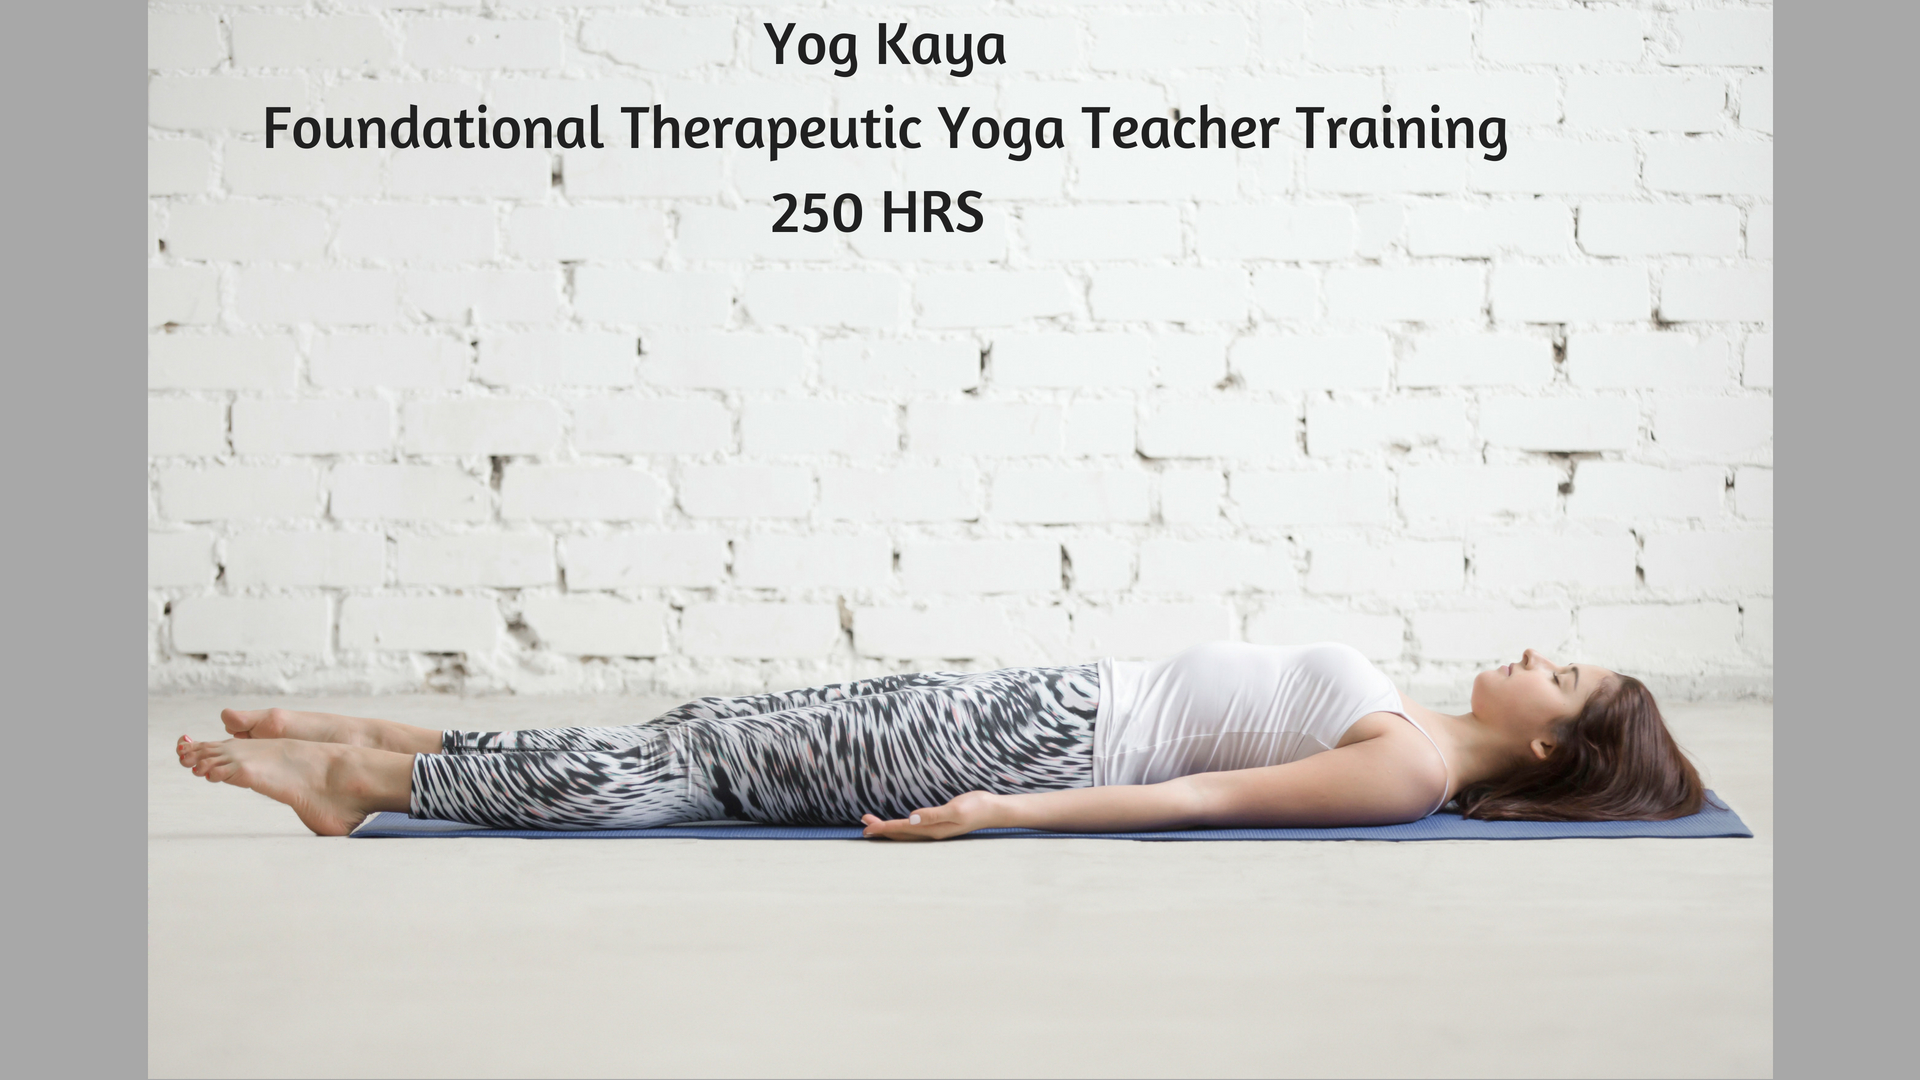 250 hour yoga teacher training in london, Yoga Class in Wokingham, Yoga Class in London,200 hour yoga teacher training in london, Yoga Therapy ,Pregnancy, Postnatal ,Hatha in Wokingham